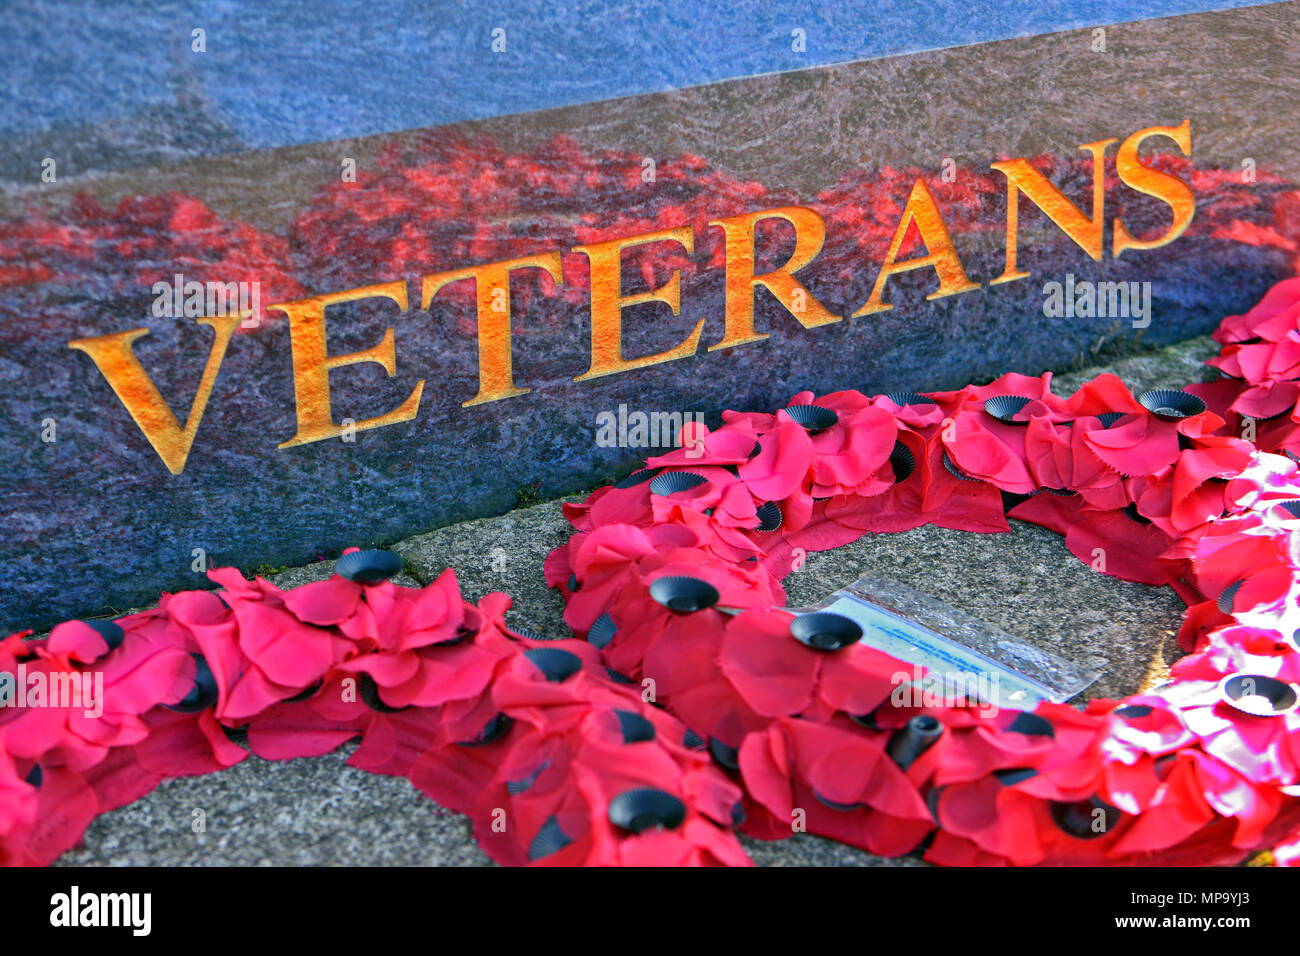 Poopy Wreaths at the foot of a memorial commemorating veterans of the armed forces, Glasgow, Scotland - Stock Image